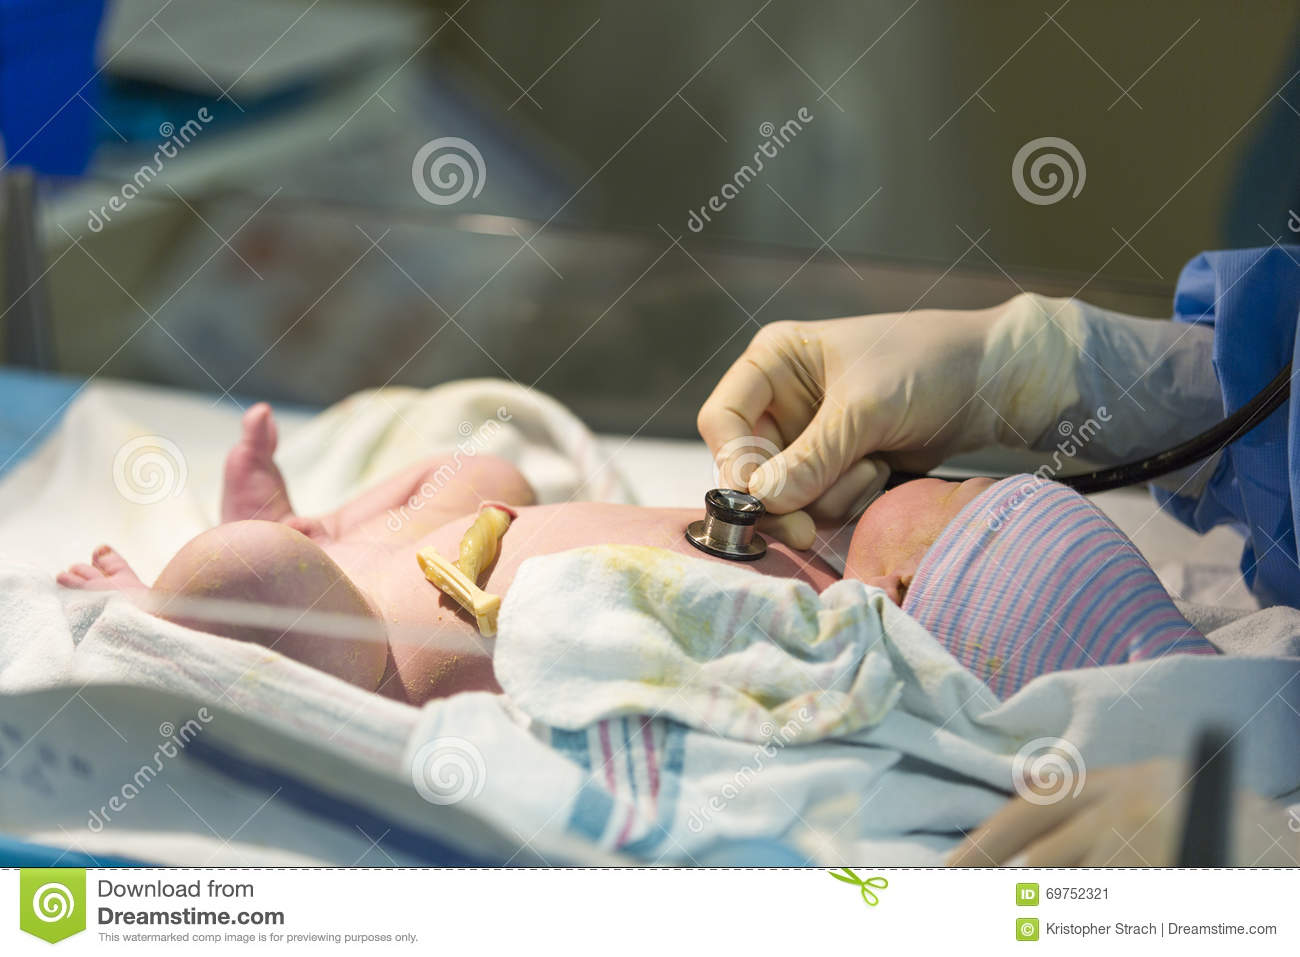 Baby bed heartbeat - Newborn Male Baby Being Checked With Stethoscope